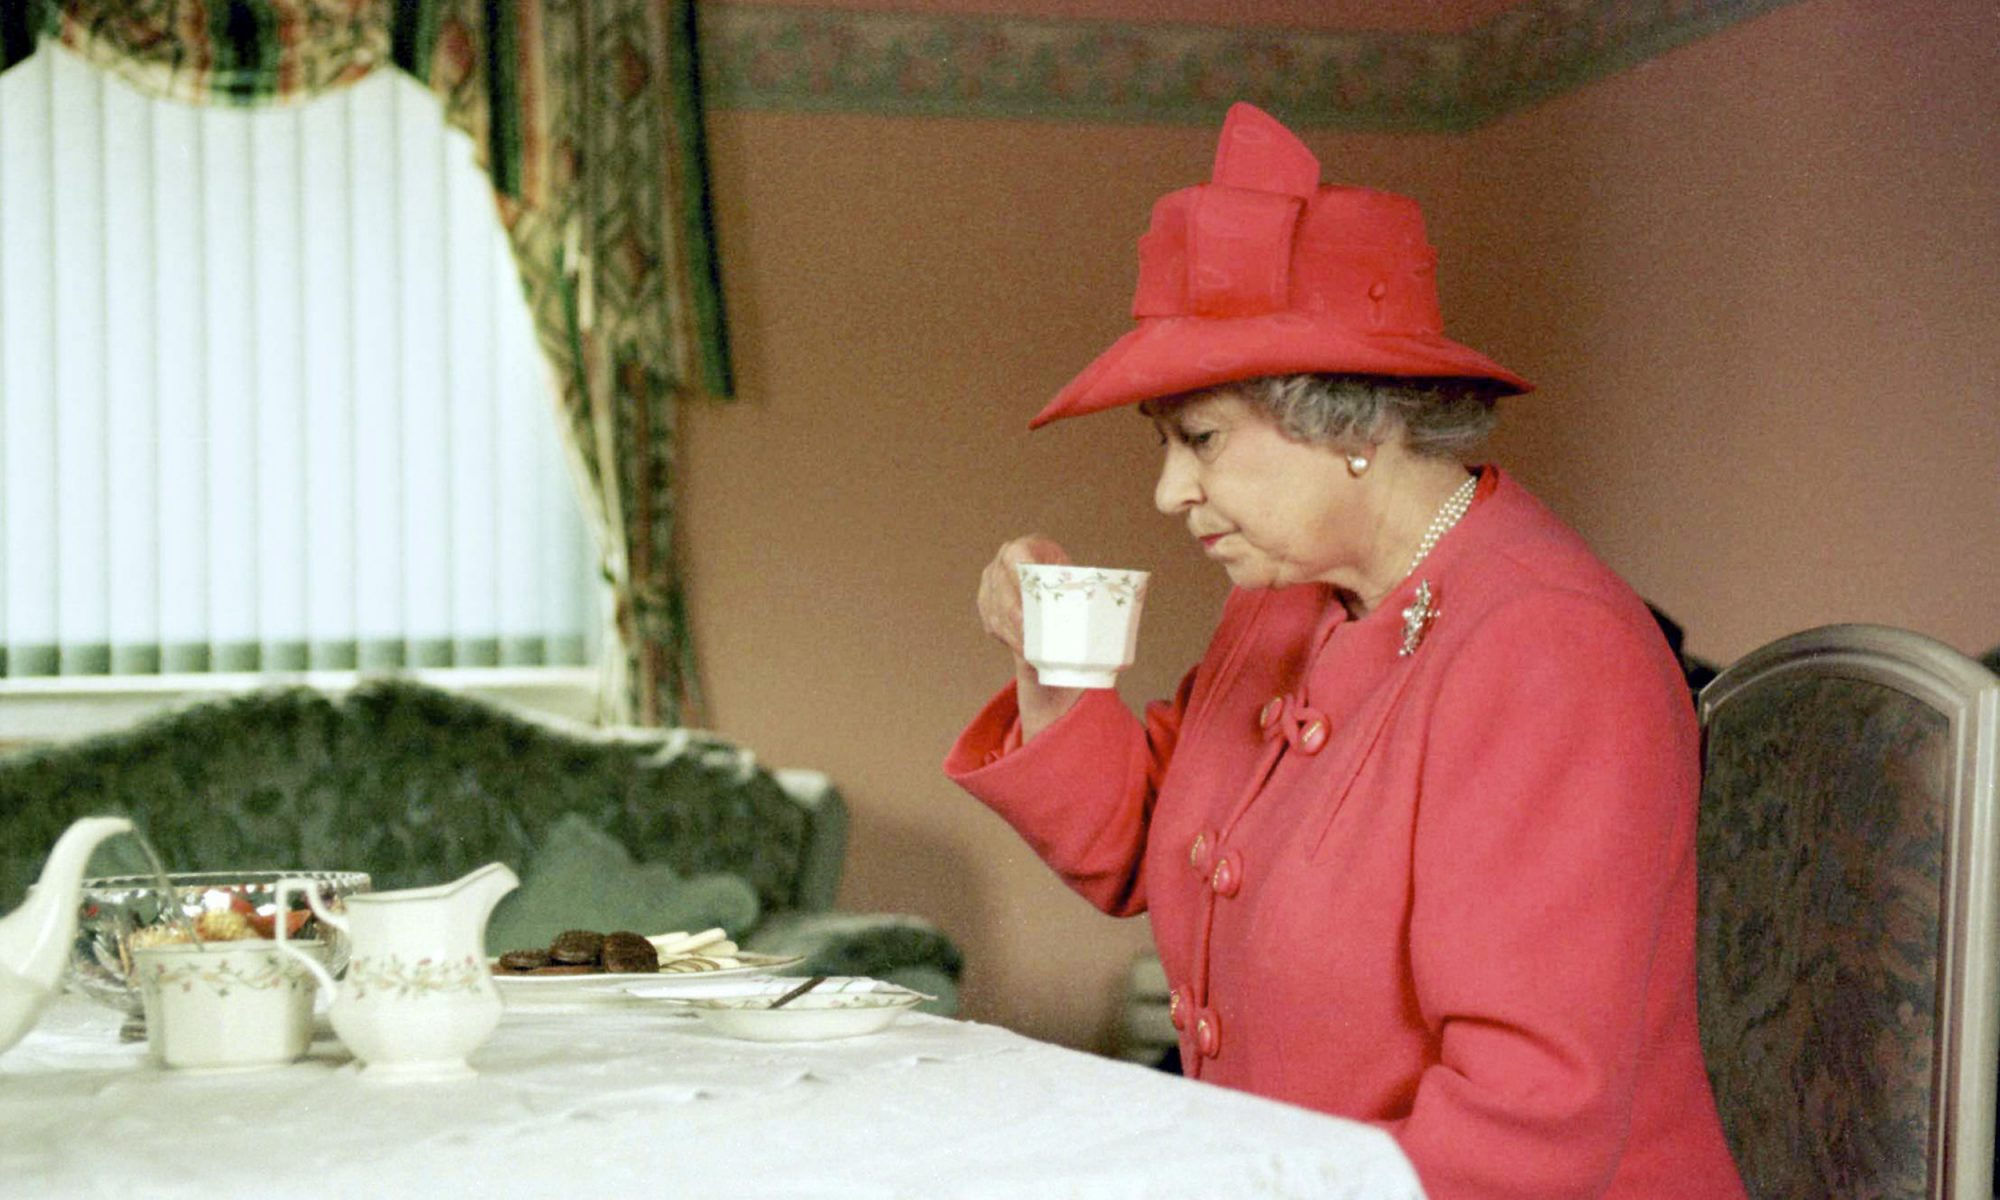 EC: The Queen of England Eats Breakfast Before Breakfast